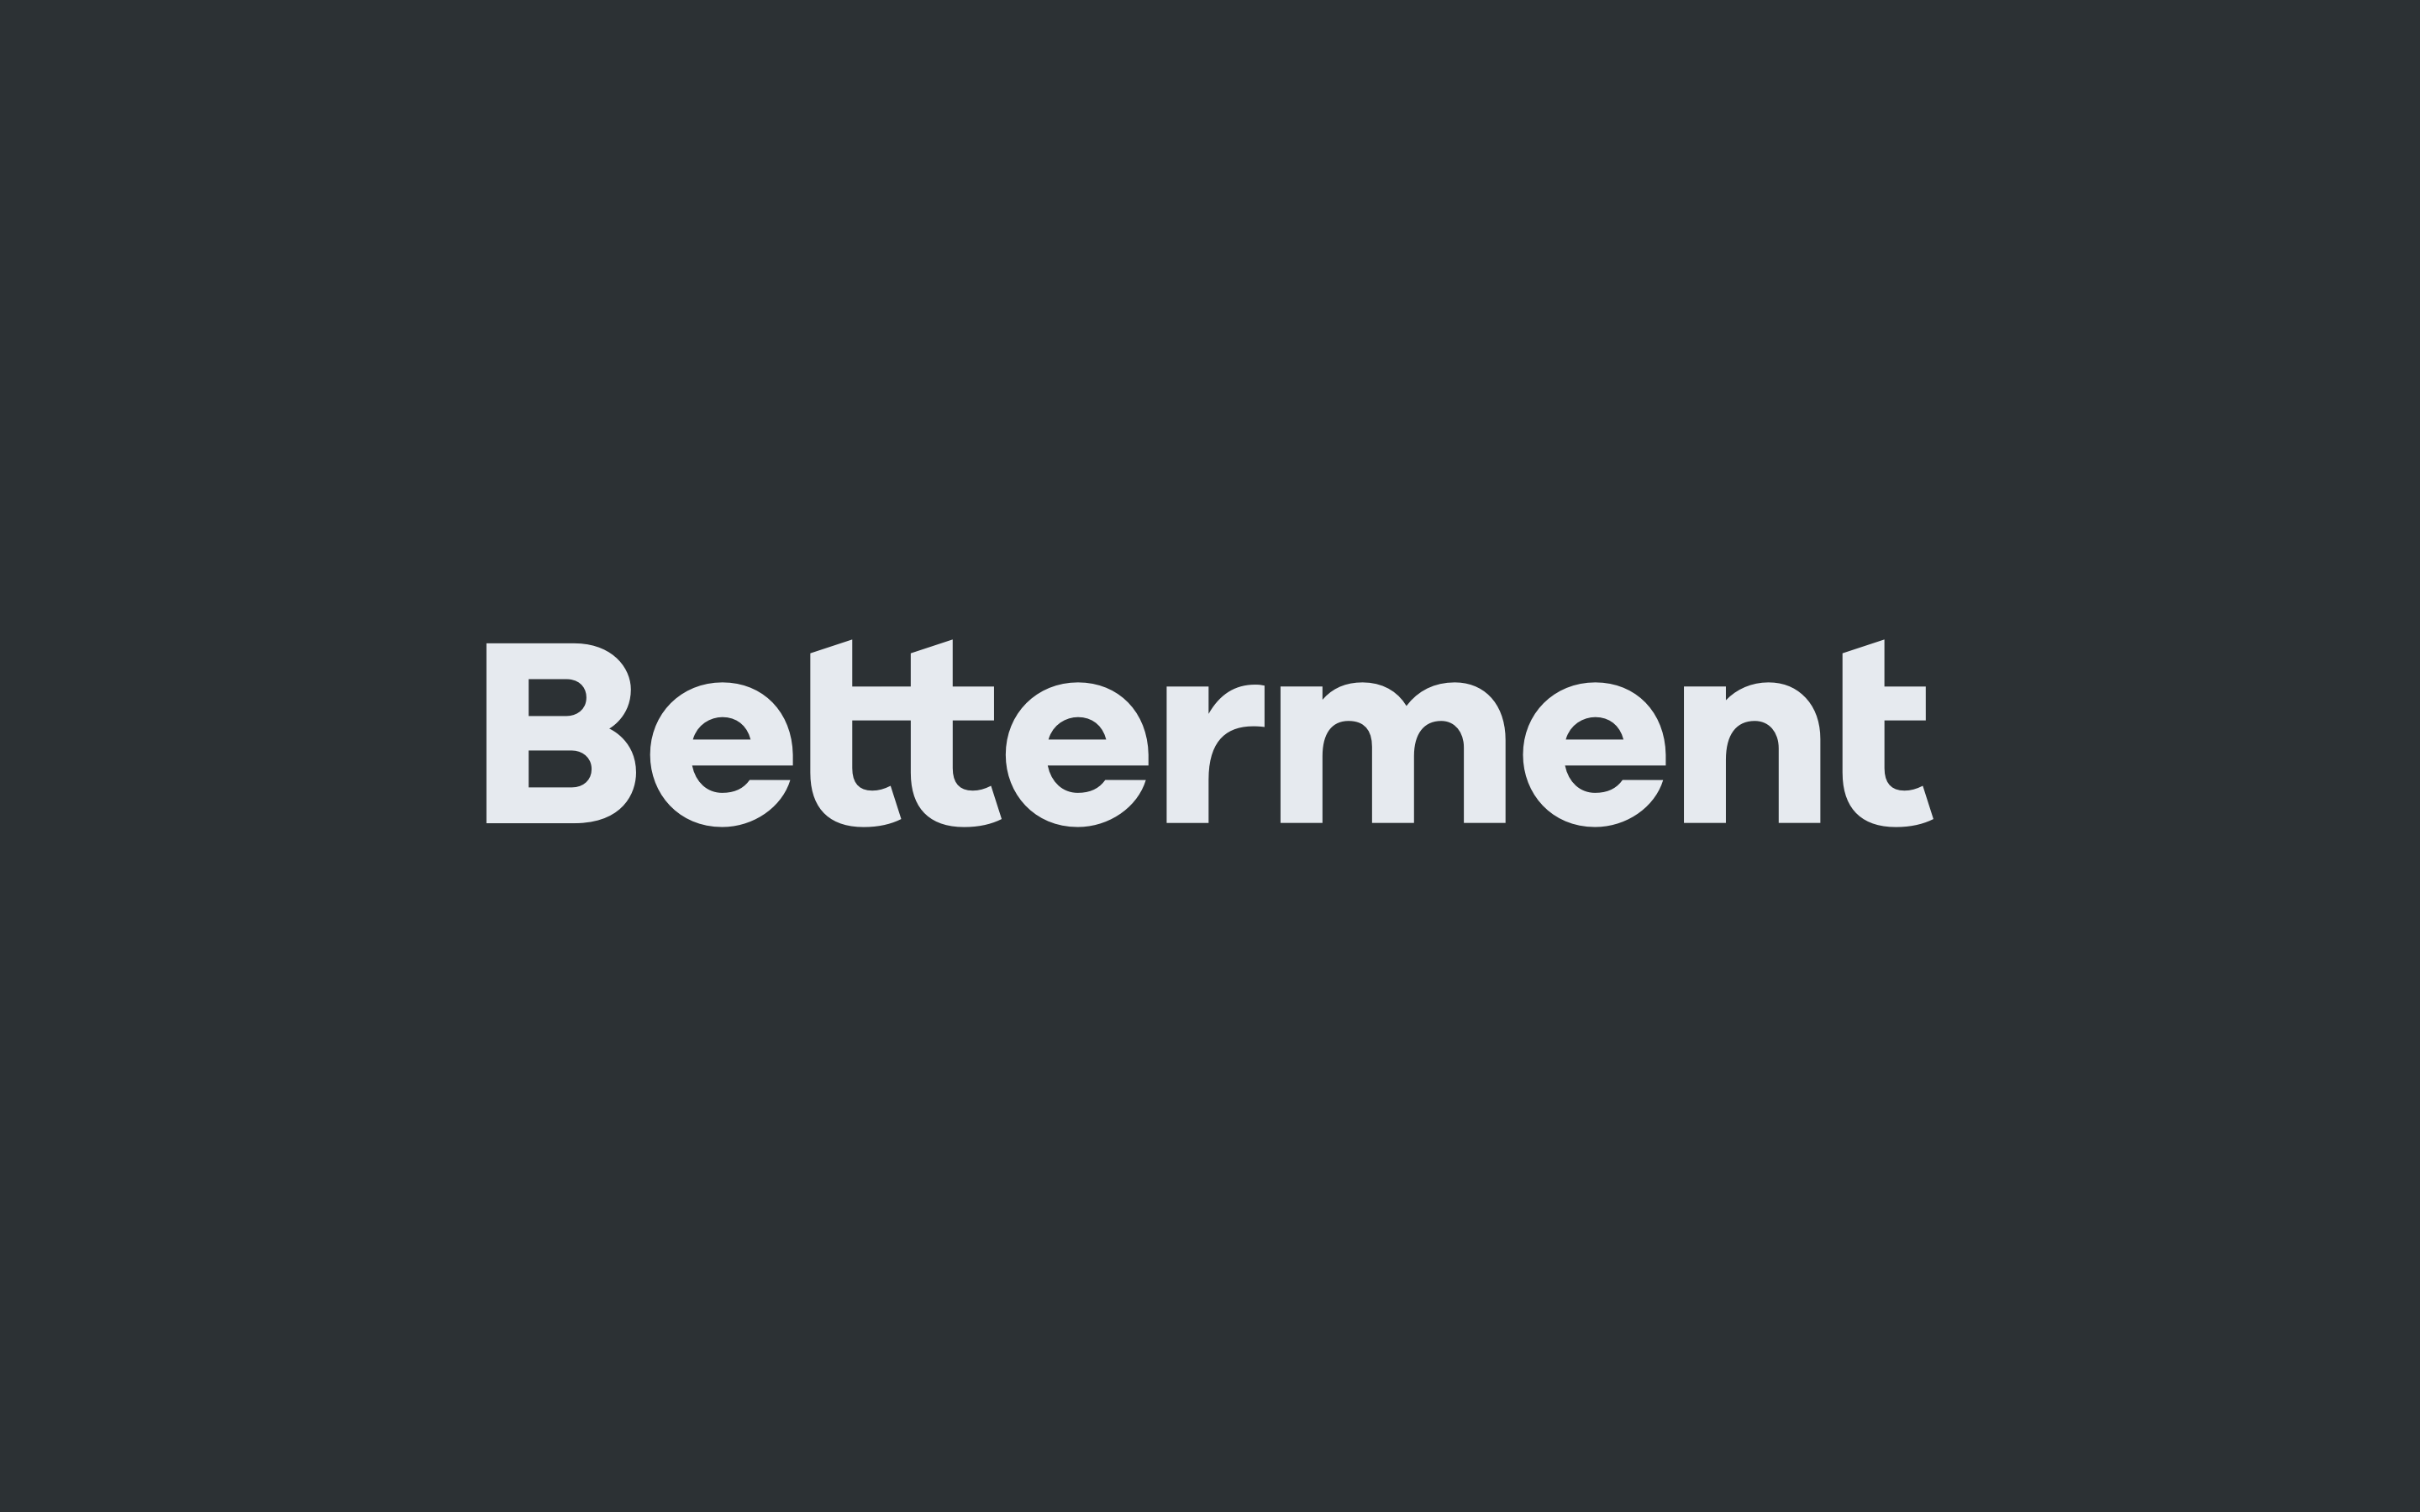 Simple and Elegant Brand Identity for Betterment